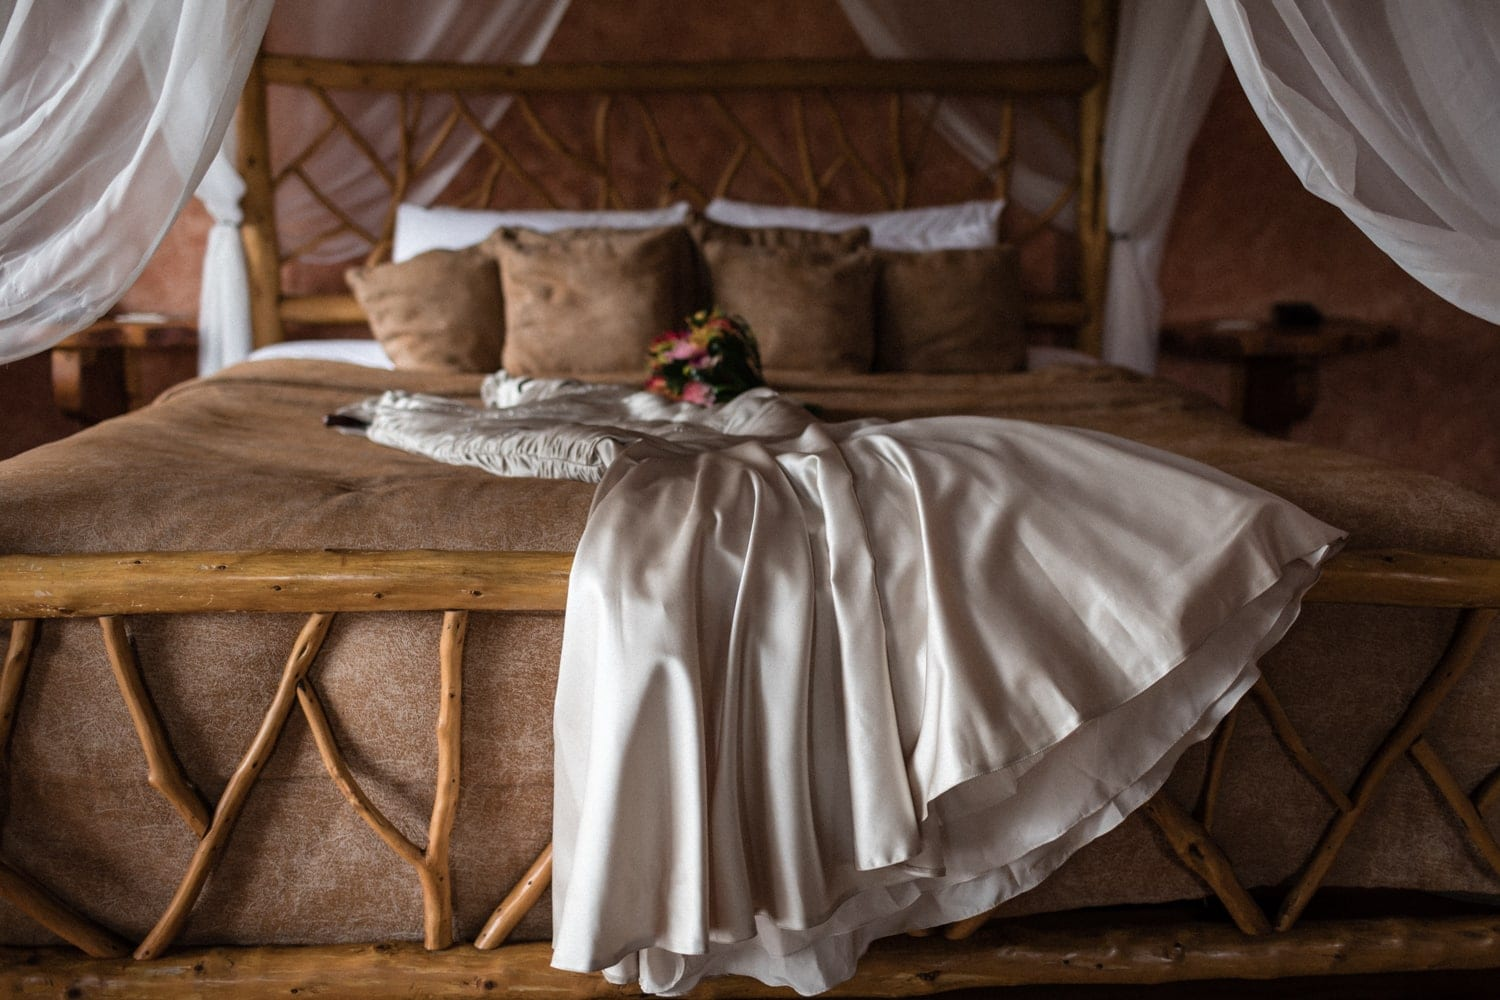 Wedding dress on canopy bed in honeymoon suite at Peace Lodge in Costa Rica.